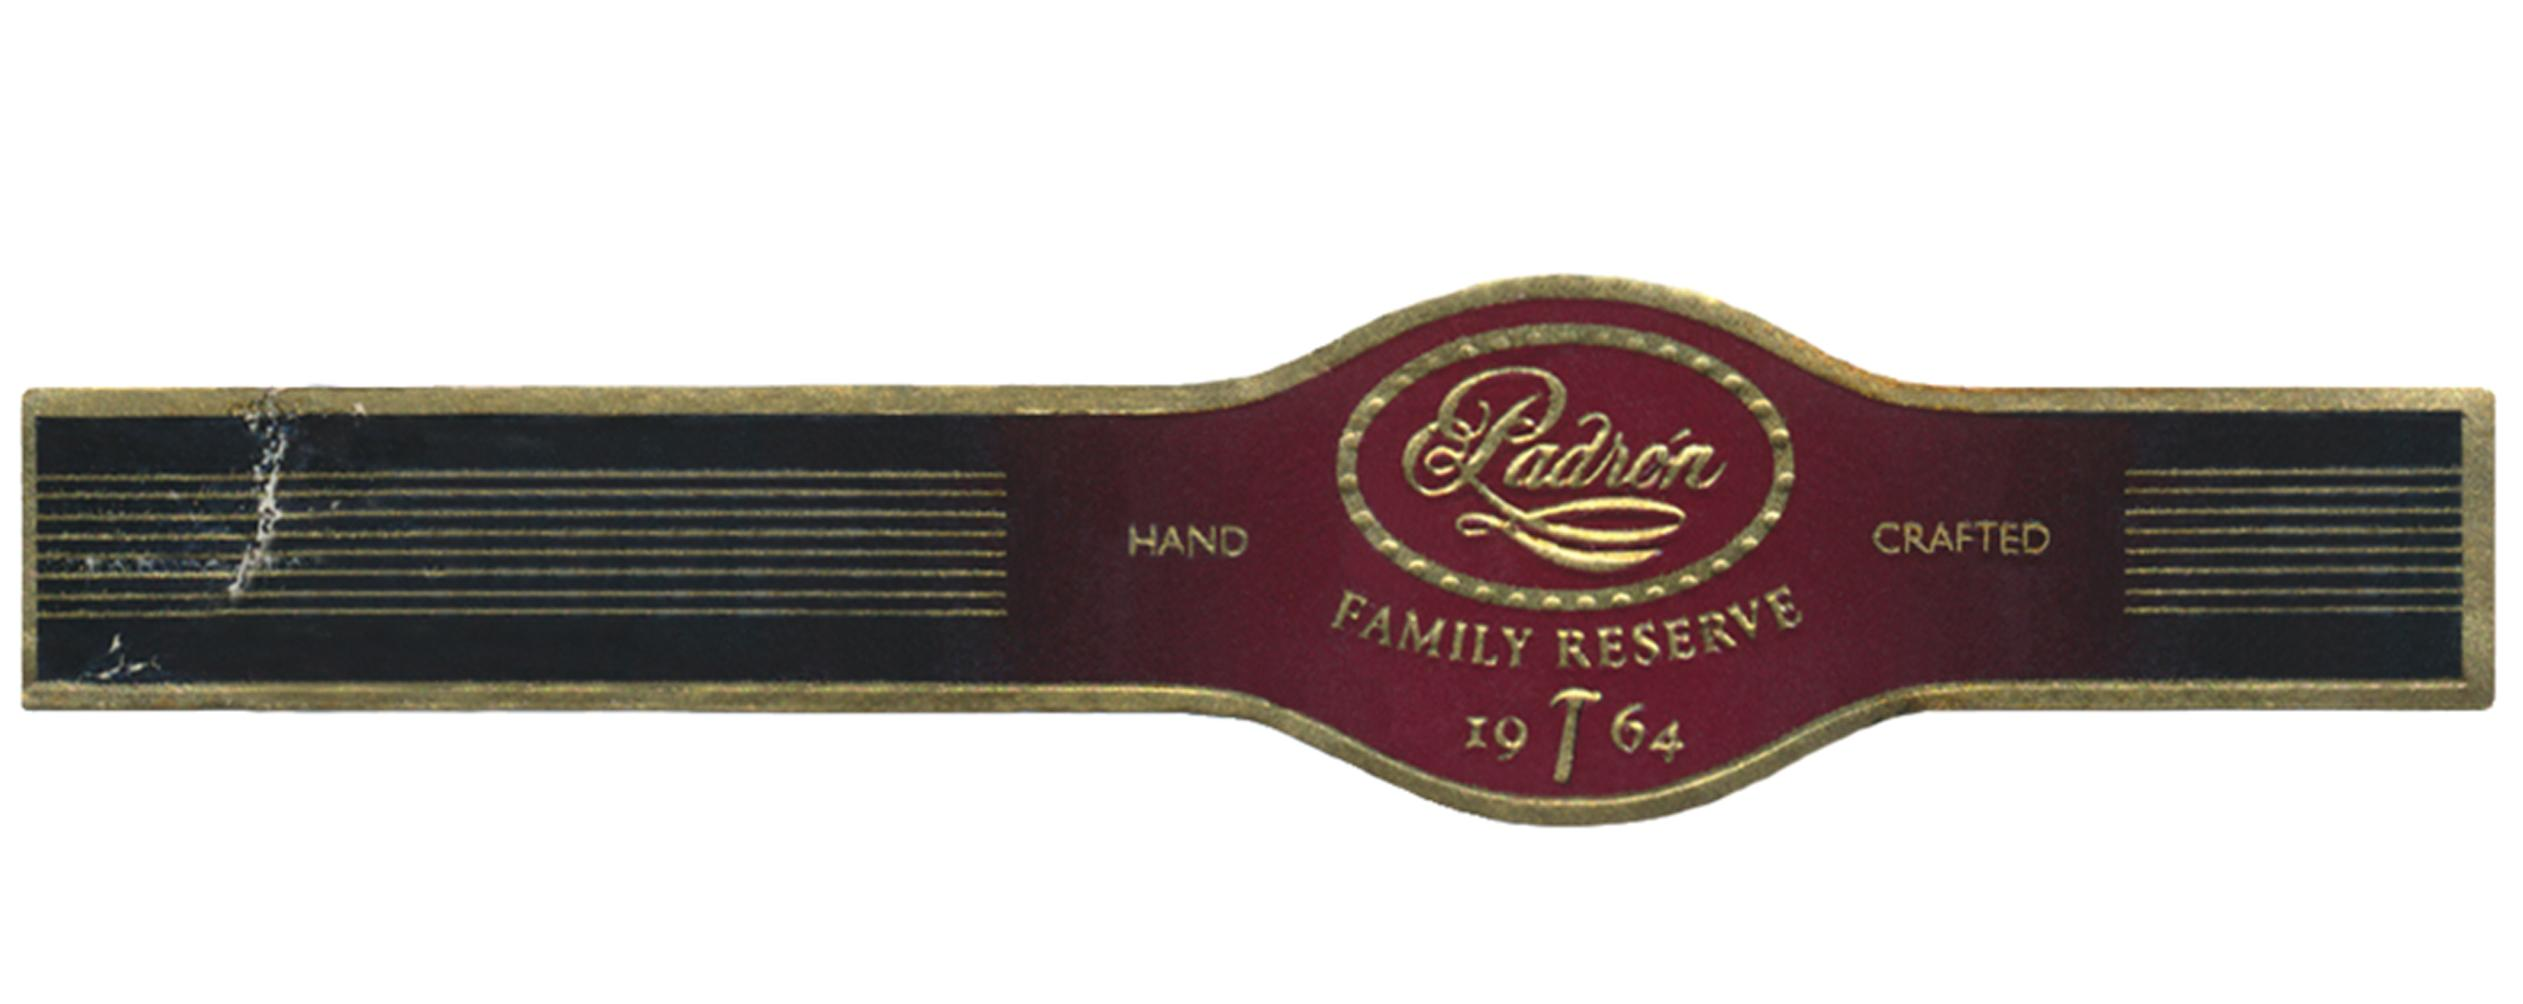 Padrón Family Reserve No. 44 (2010)